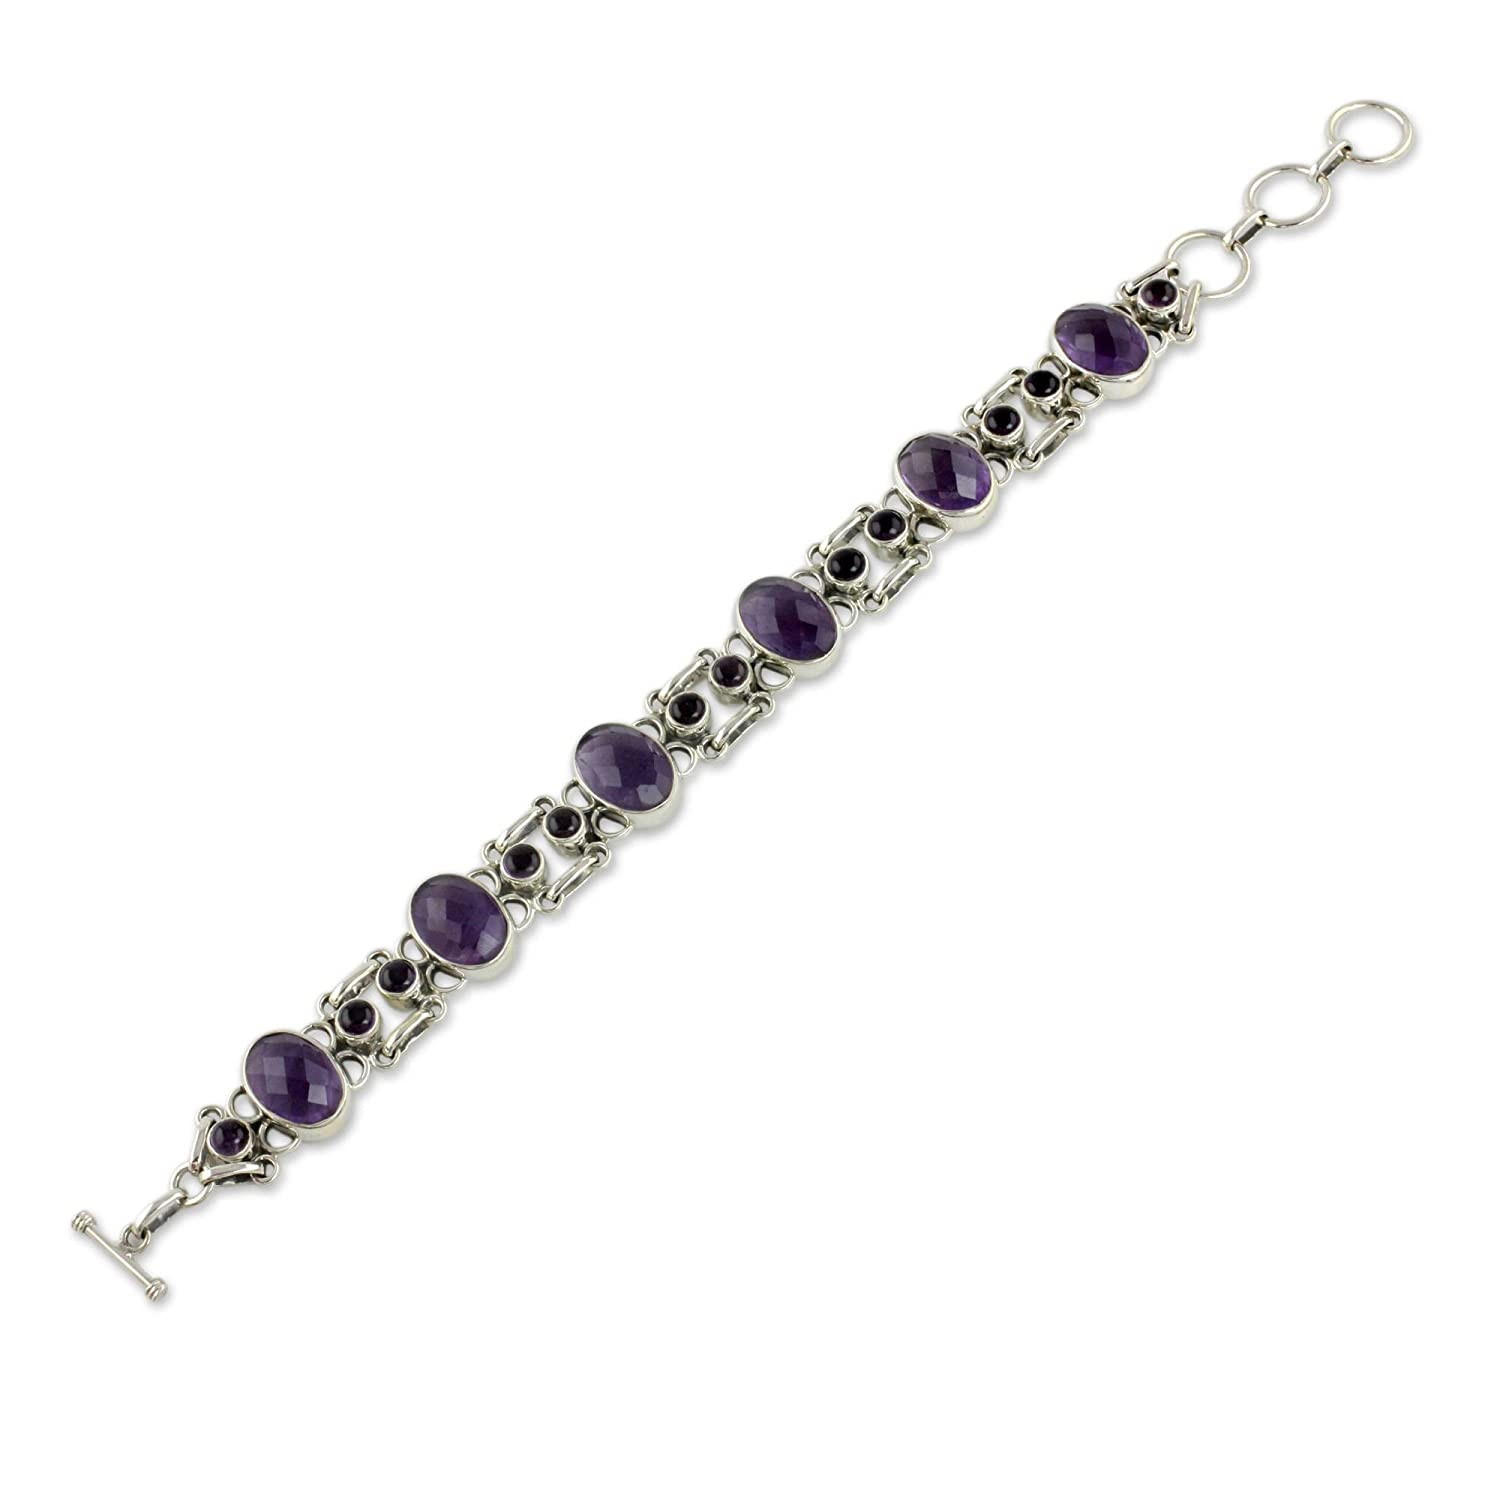 NOVICA Amethyst Bracelet Handcrafted in Sterling Silver Jewelry, Royal Purple